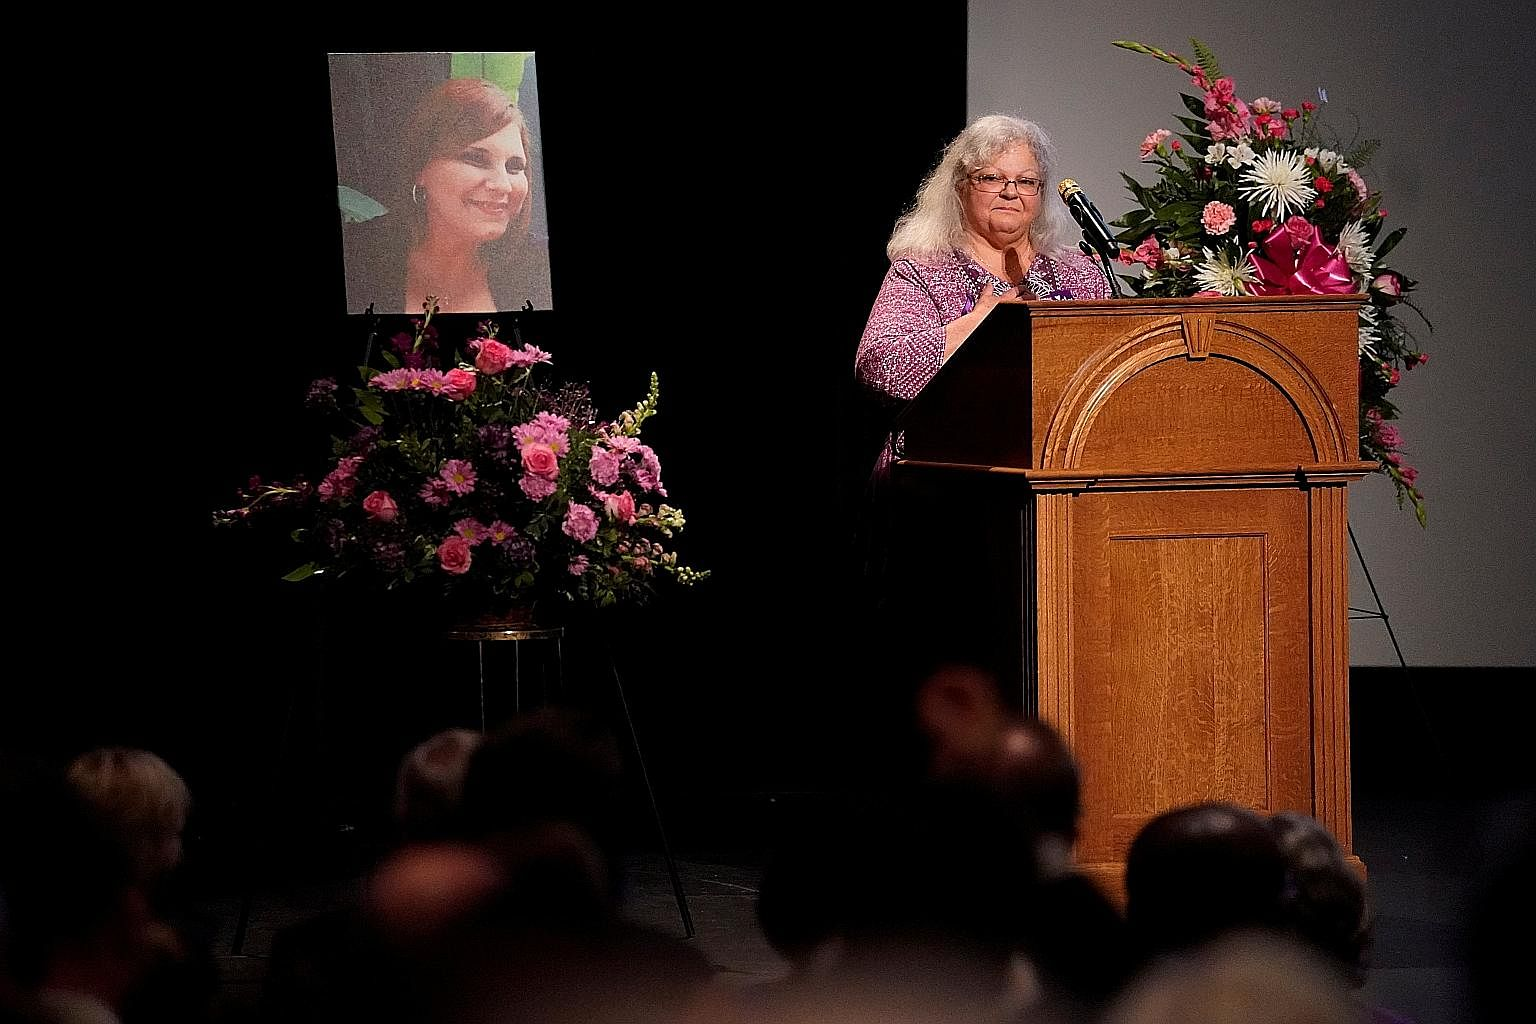 Charlottesville car attack victim Heather Heyer's mother Susan Bro received a standing ovation during her remarks at a memorial service for her daughter at the city's Paramount Theatre on Wednesday.